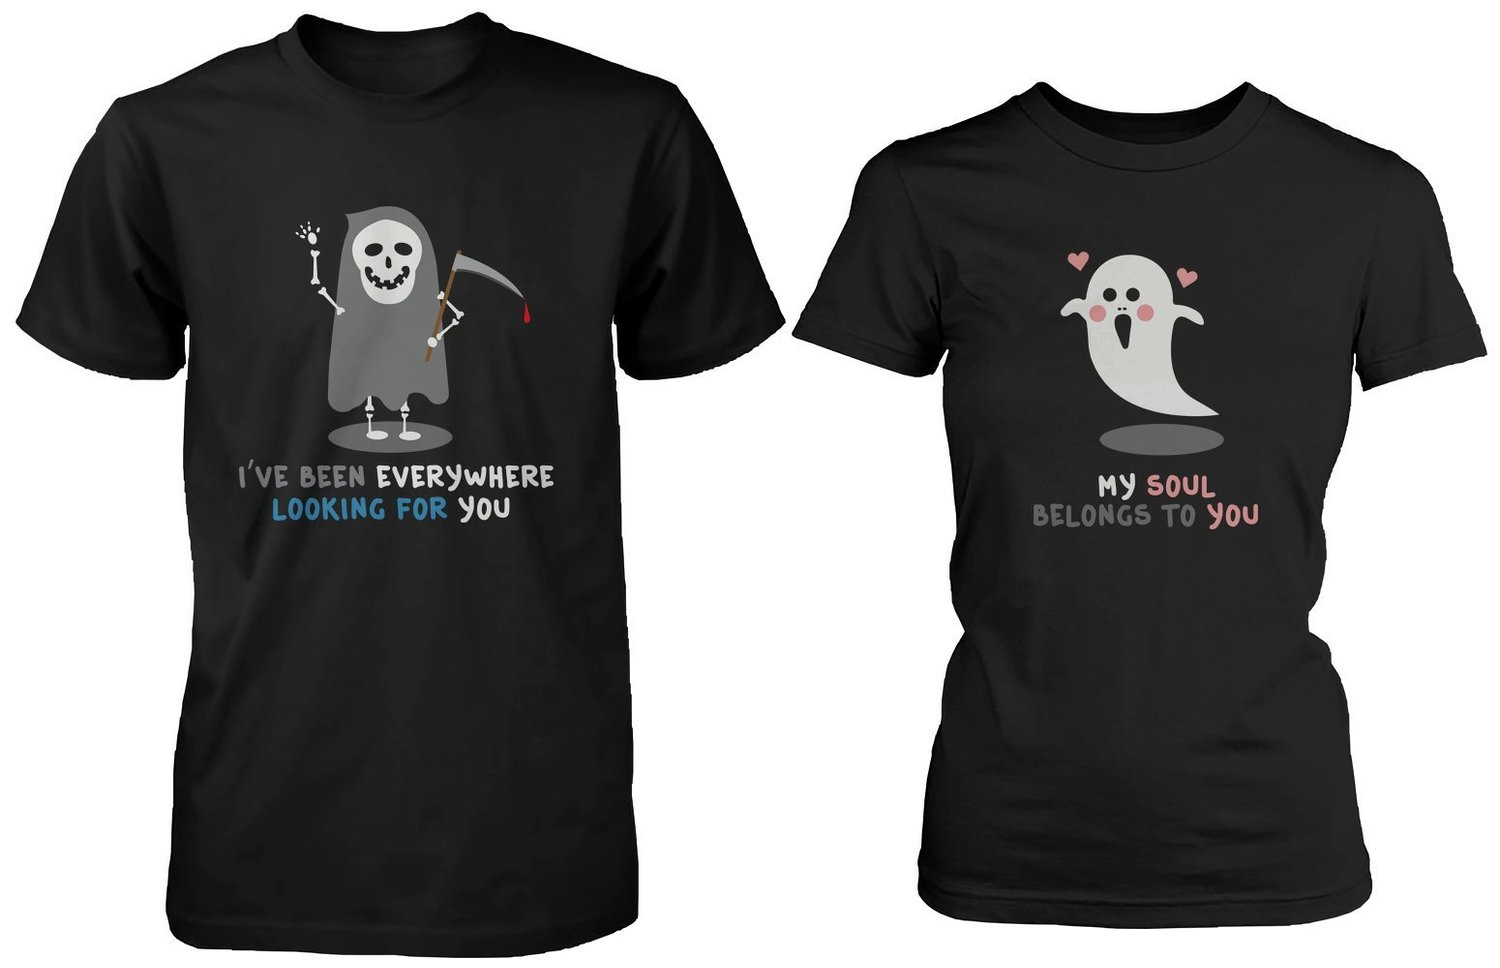 Amazon.com: Halloween Matching Couple Shirts - Cute Skeleton and Ghost Couples: Clothing